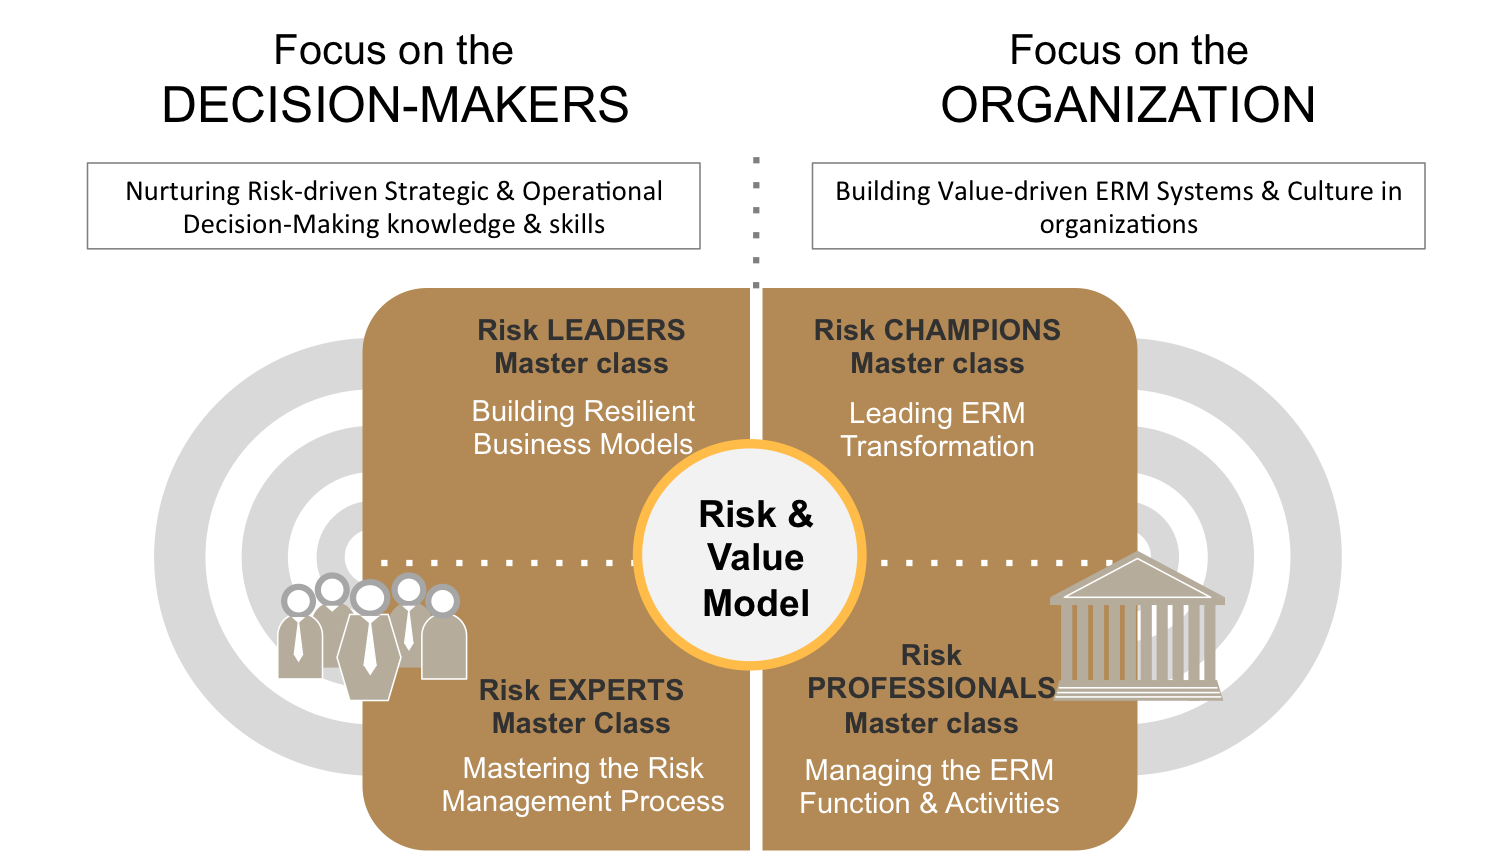 Certifications arimi as described above lecp is the abbreviation for risk leaders experts champions and professional that constitute the four essential dimensions of risk 1betcityfo Images